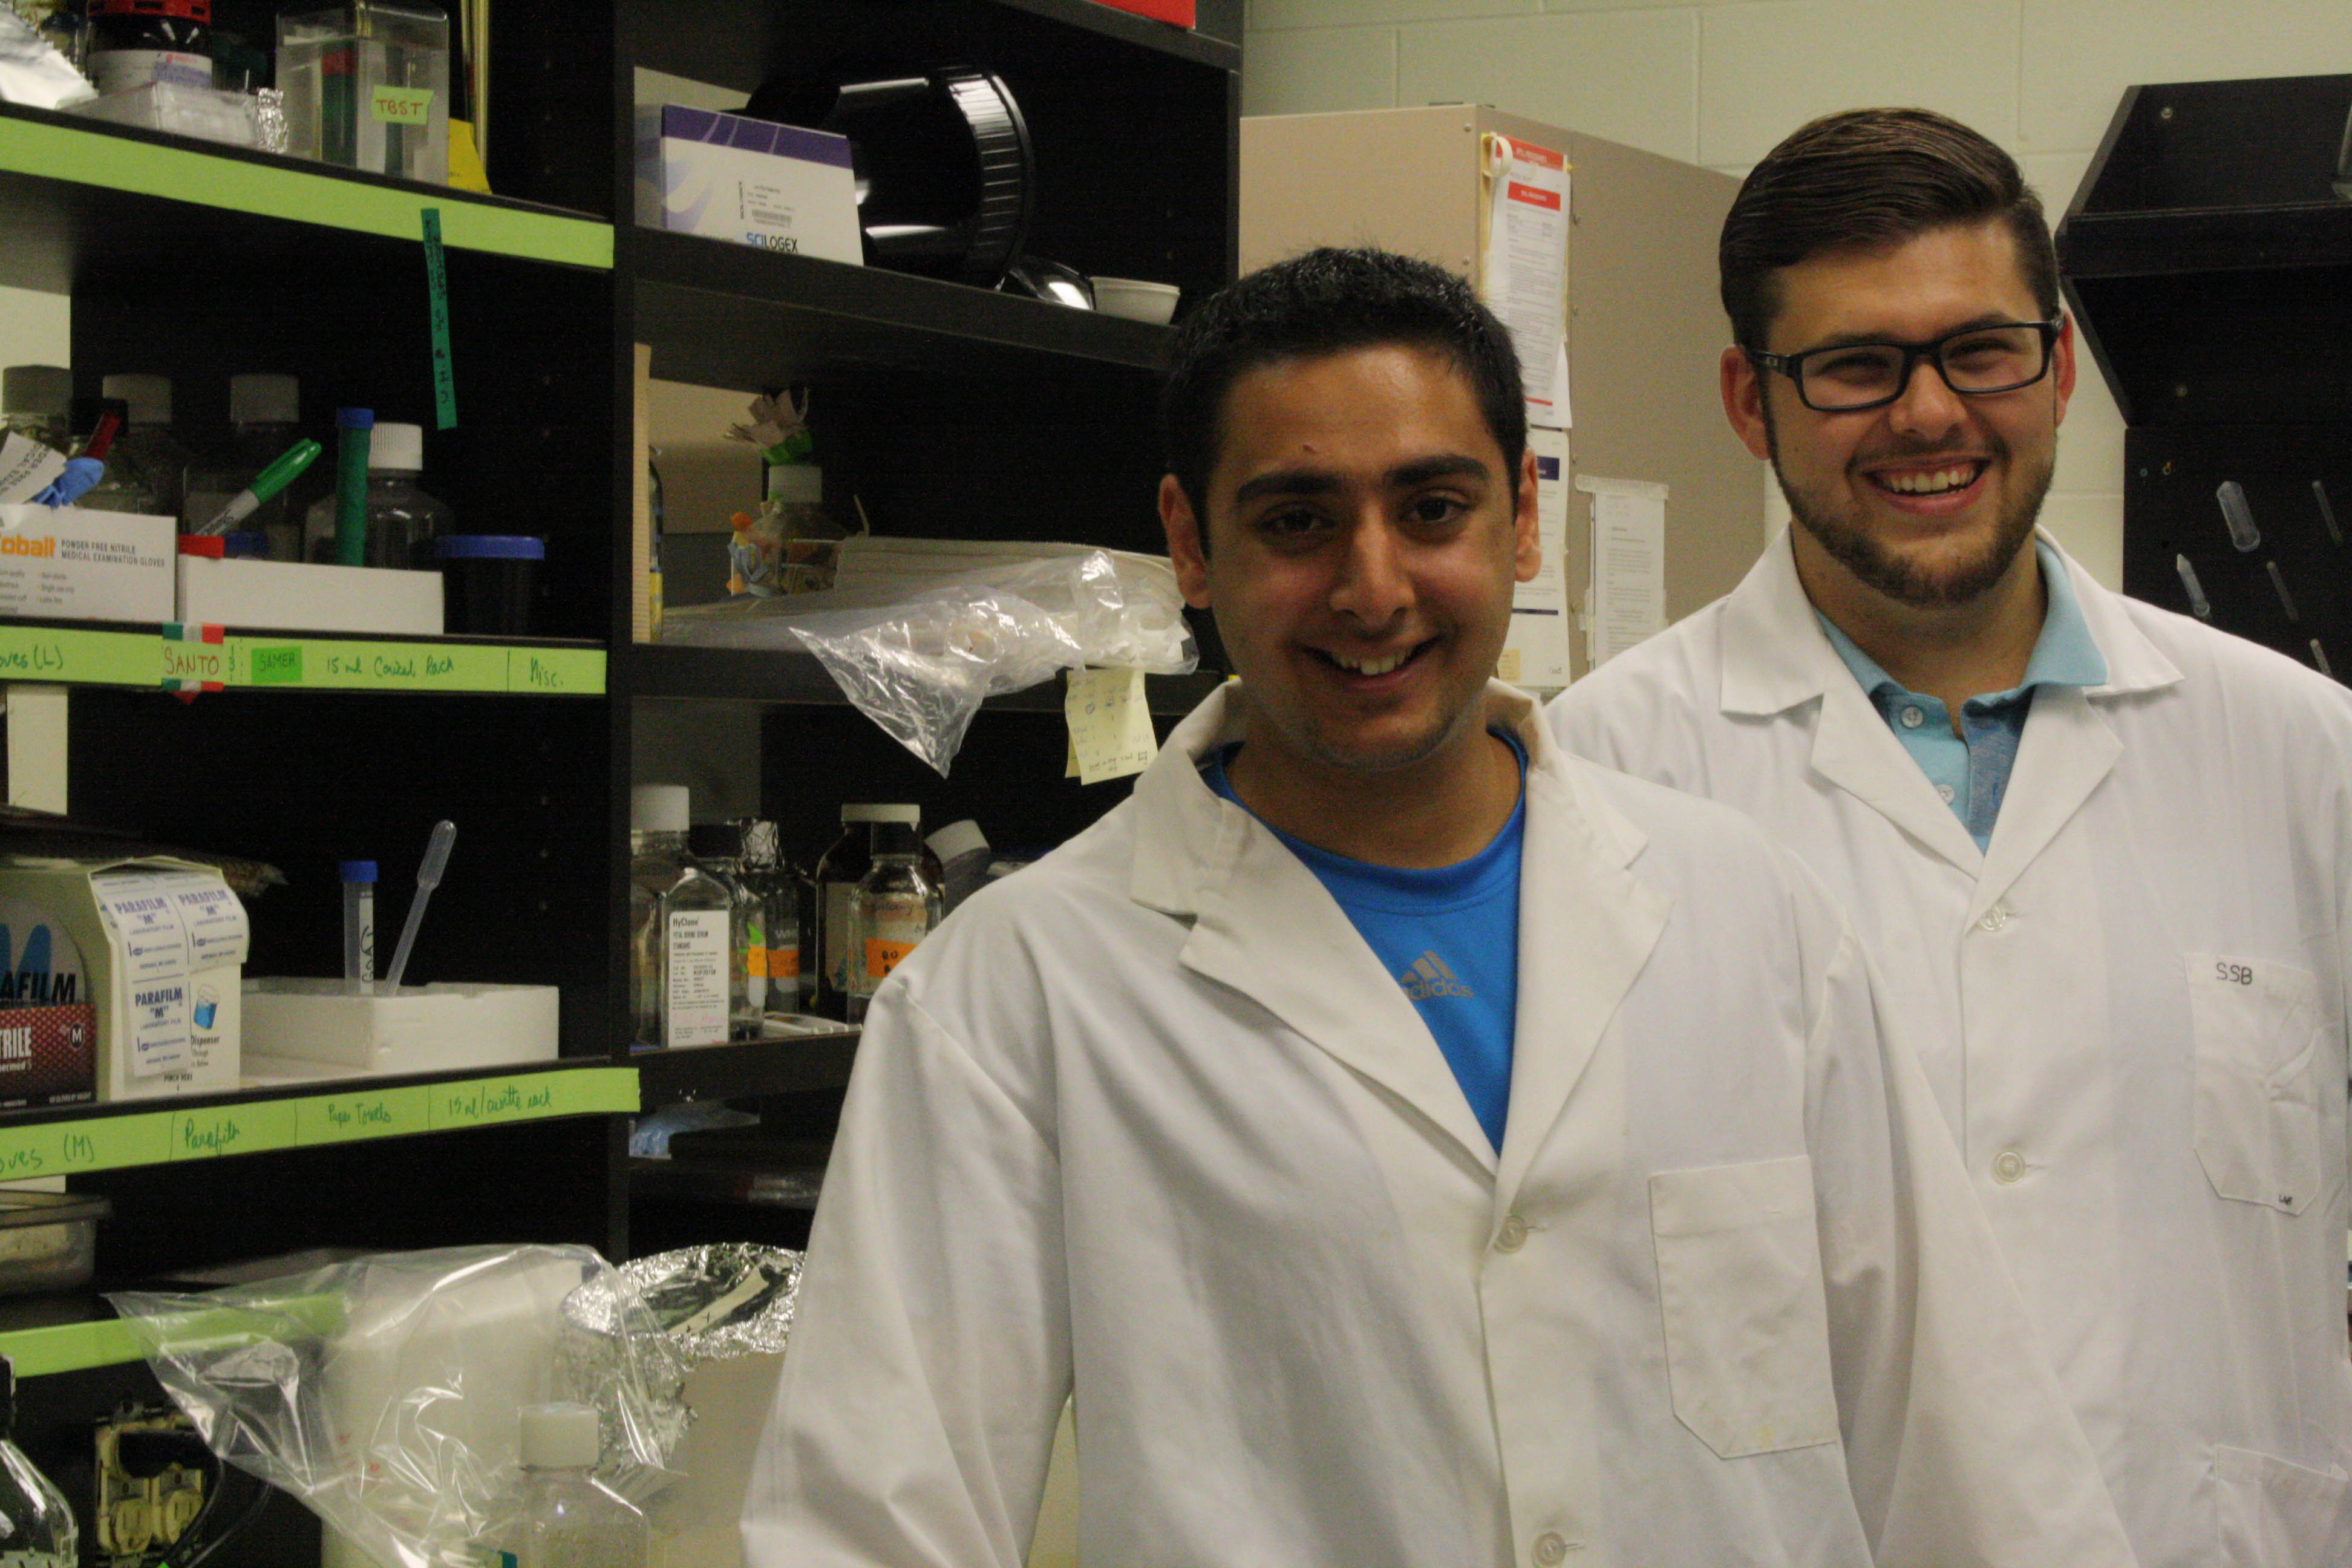 Biology students to share their brain cancer research results at fundraising walk